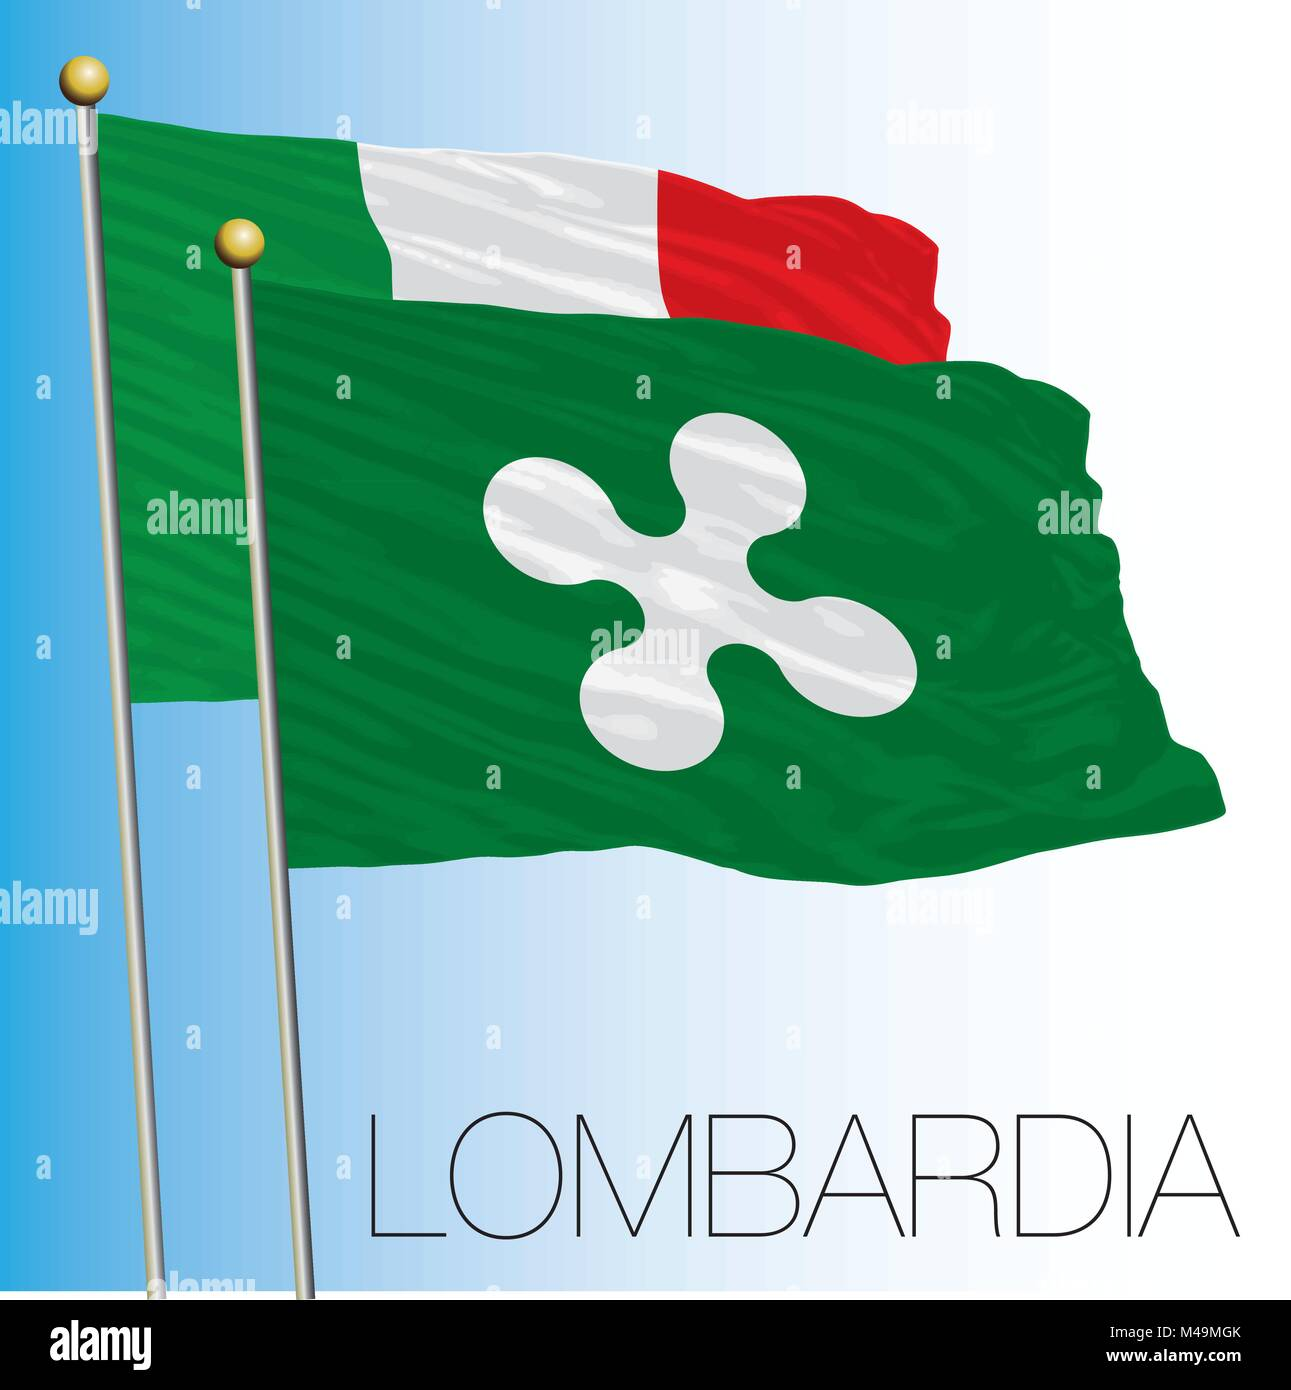 Lombardy regional flag, Italian Republic, Italy, European Union - Stock Vector